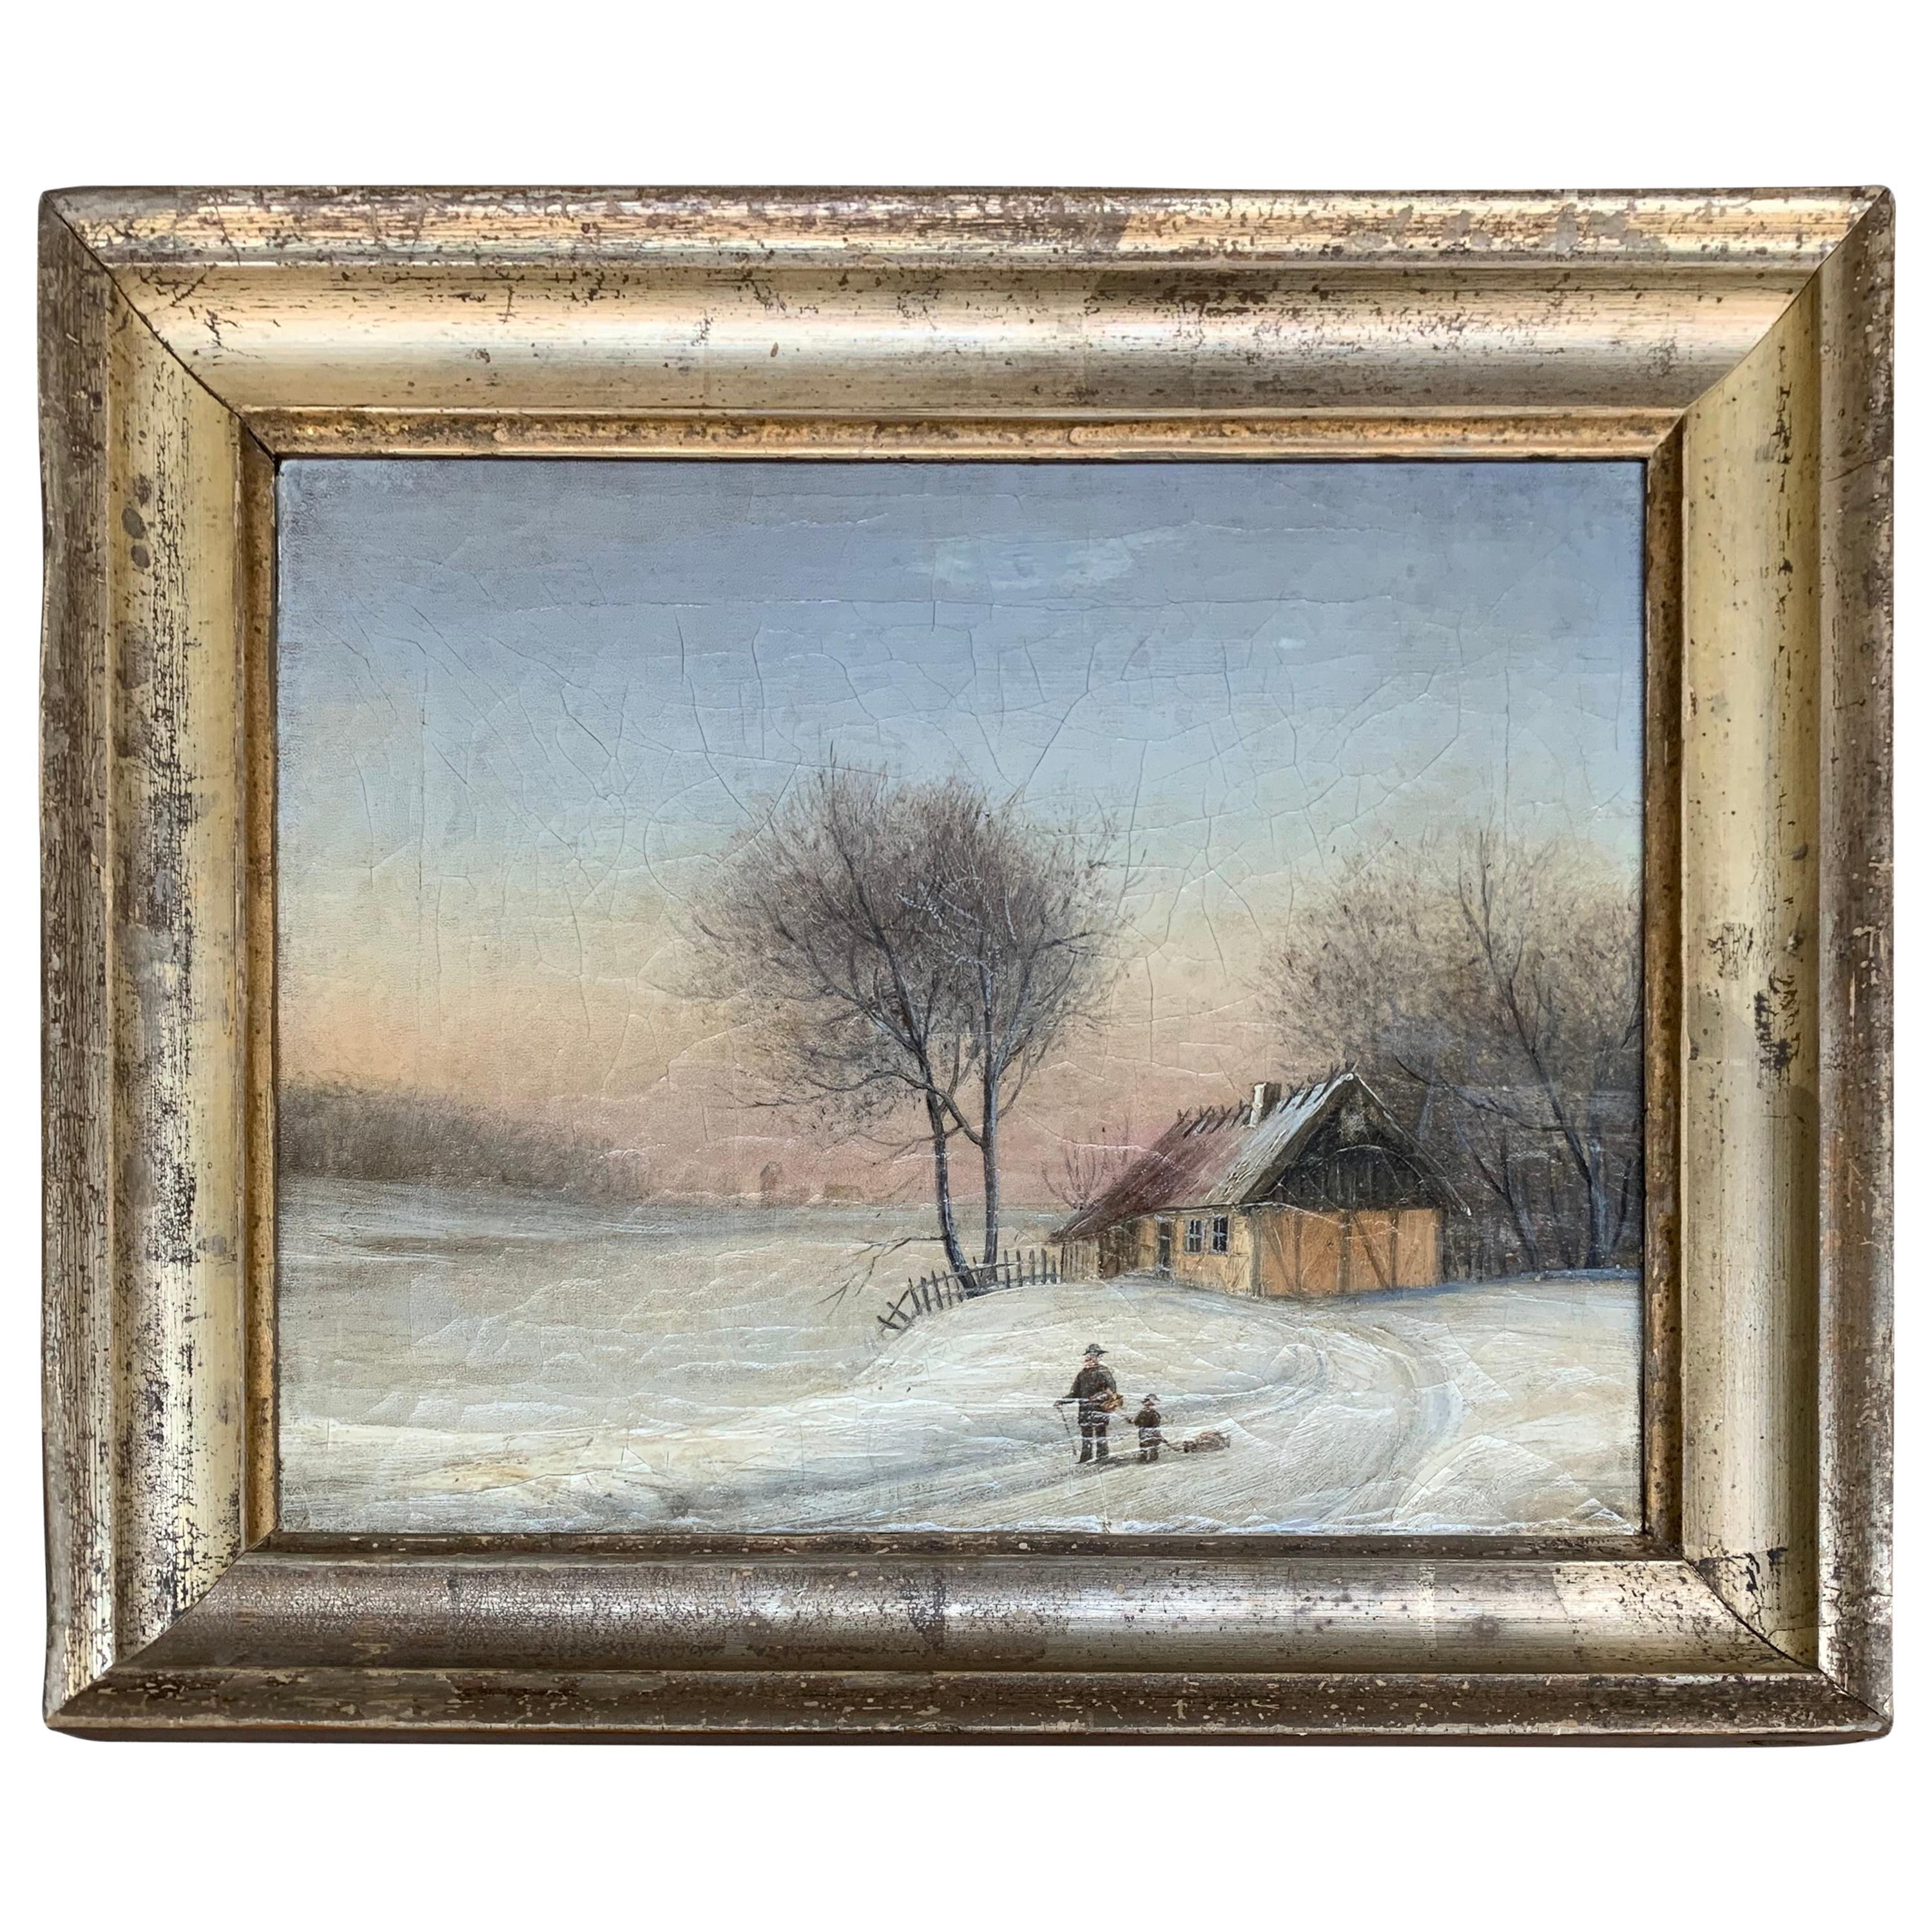 19th Century Oil Painting Of Farm House In Original Silver Frame, Scandinavia